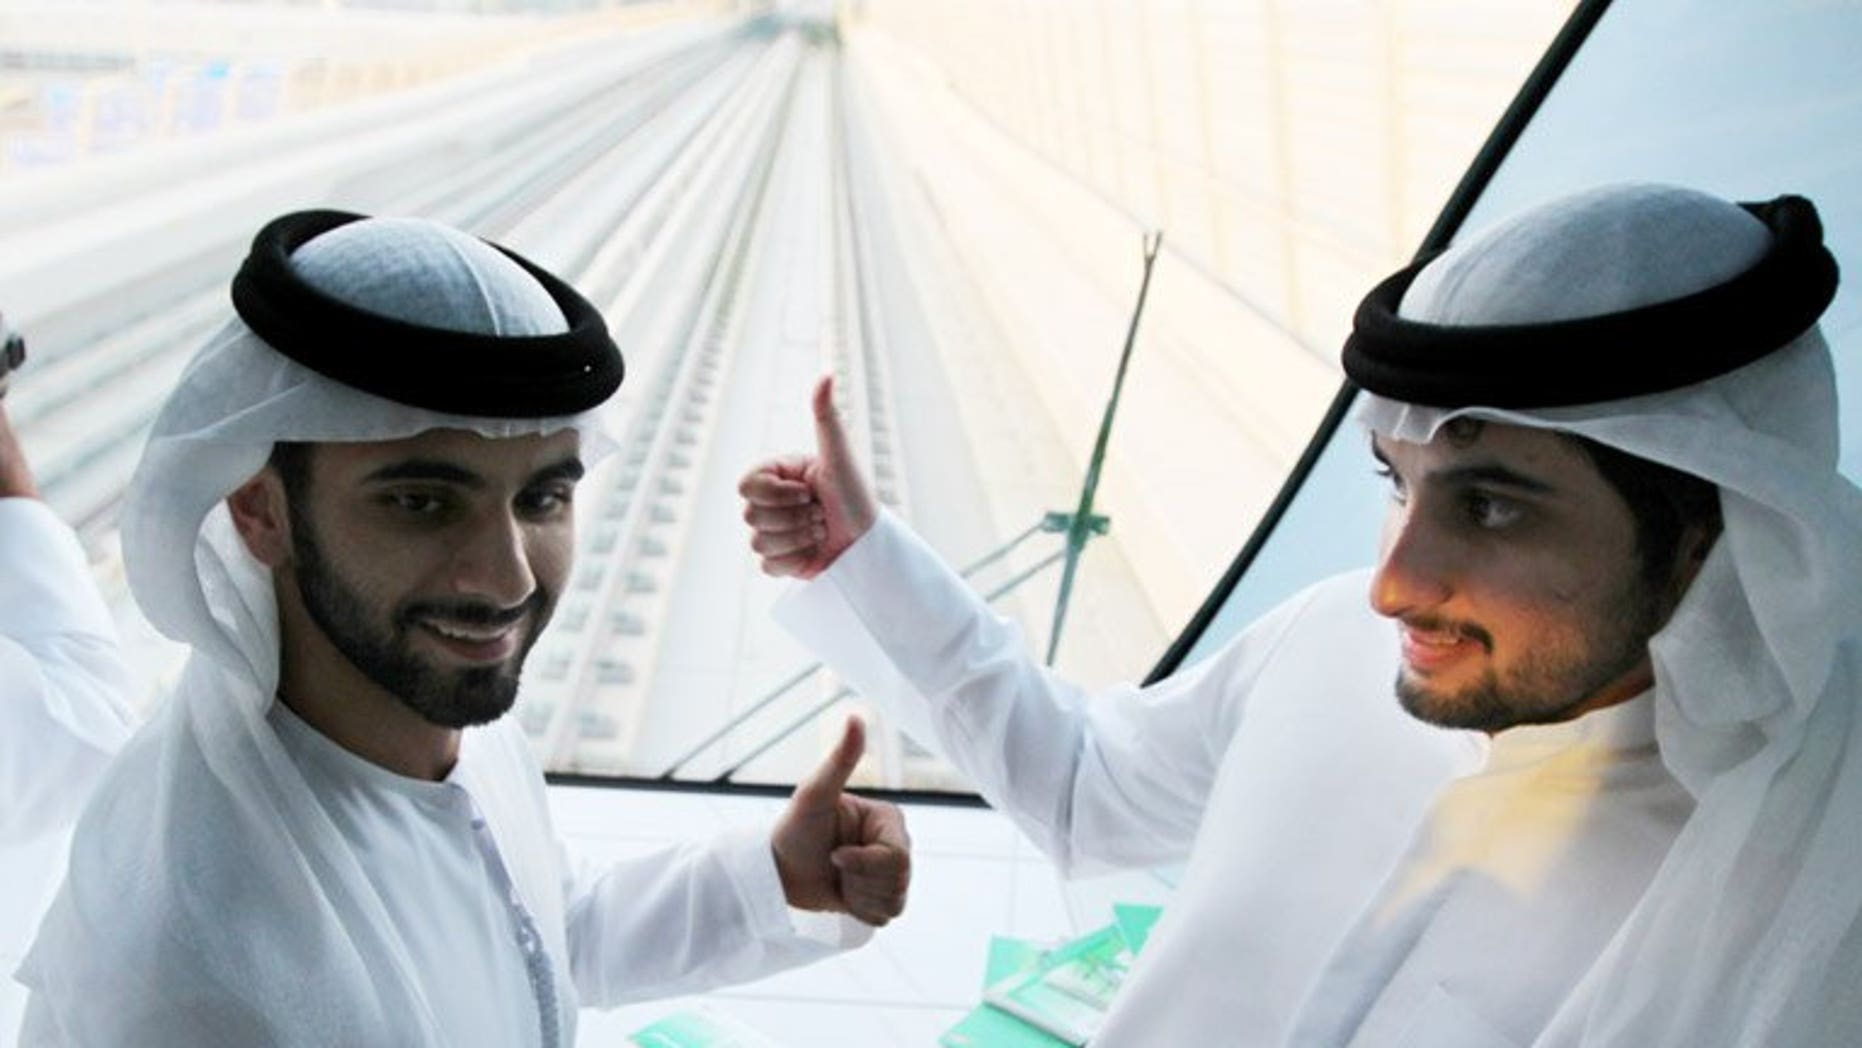 Sheikh Mansour (left) and brother Sheikh Ahmad at the inauguration of Dubai's second metro line in September 2011. An Abu Dhabi sheikh who helped British bank Barclays avoid a state bailout during the global financial crisis has sold his stake.